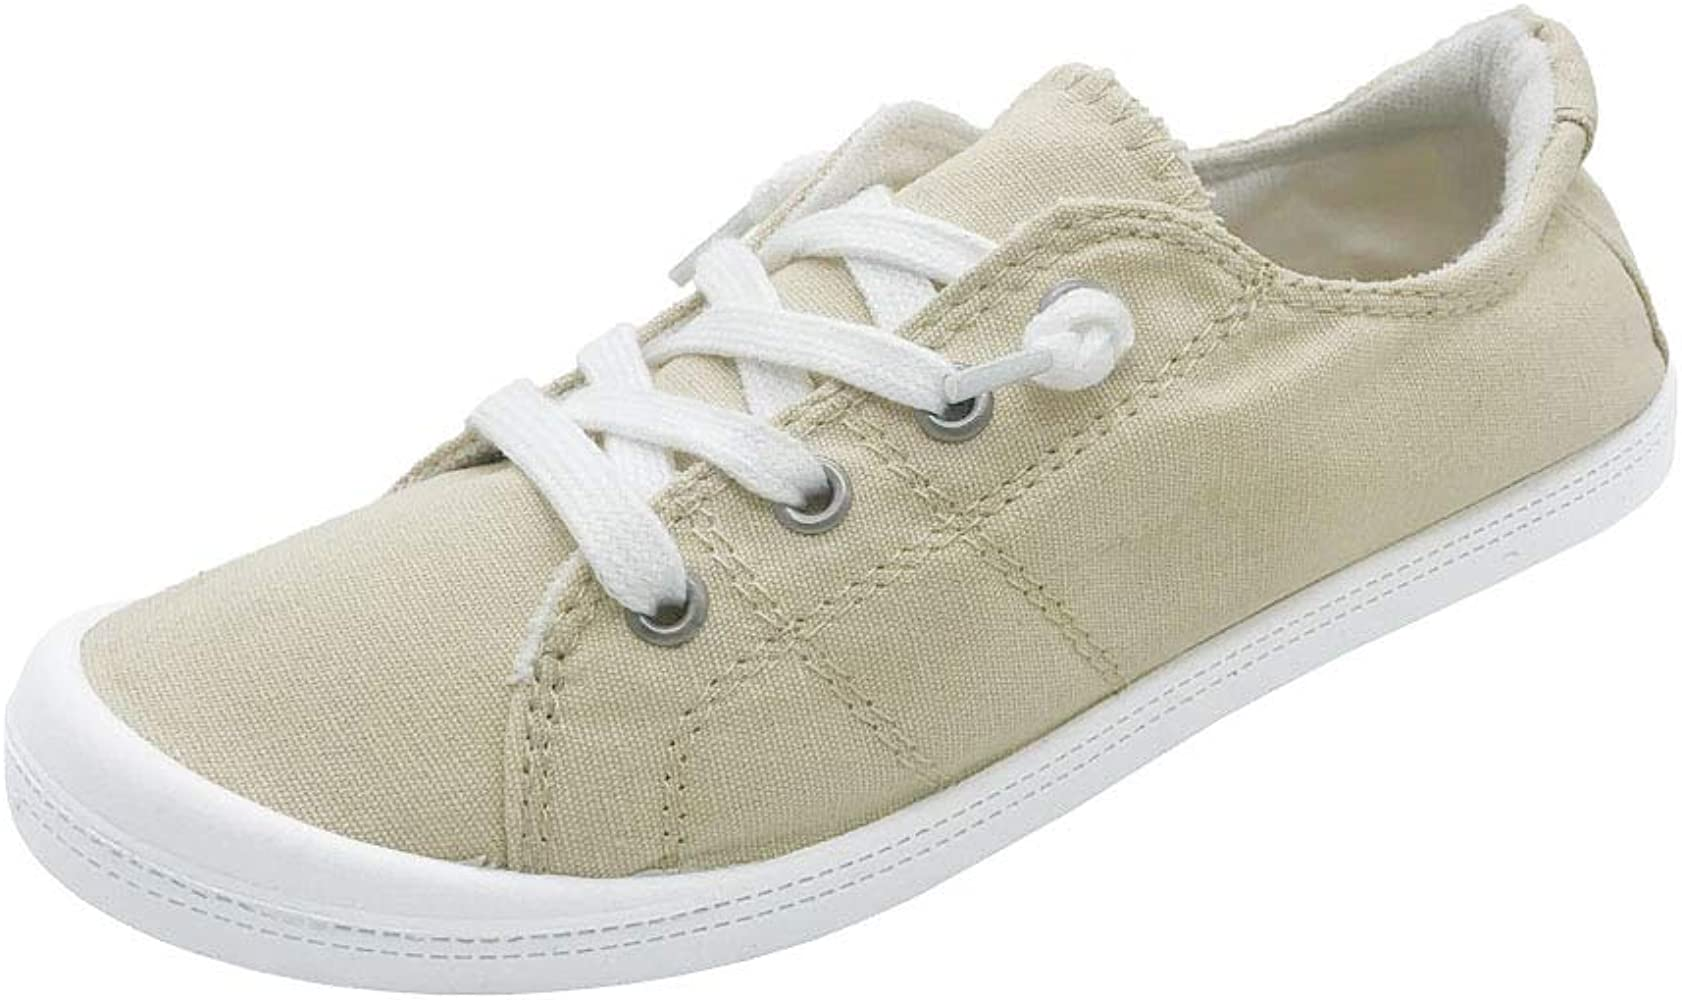 LADIES WOMENS LACE UP SLIP ON TRAINERS SNEAKERS PLIMSOLLS FASHION SHOES SIZES